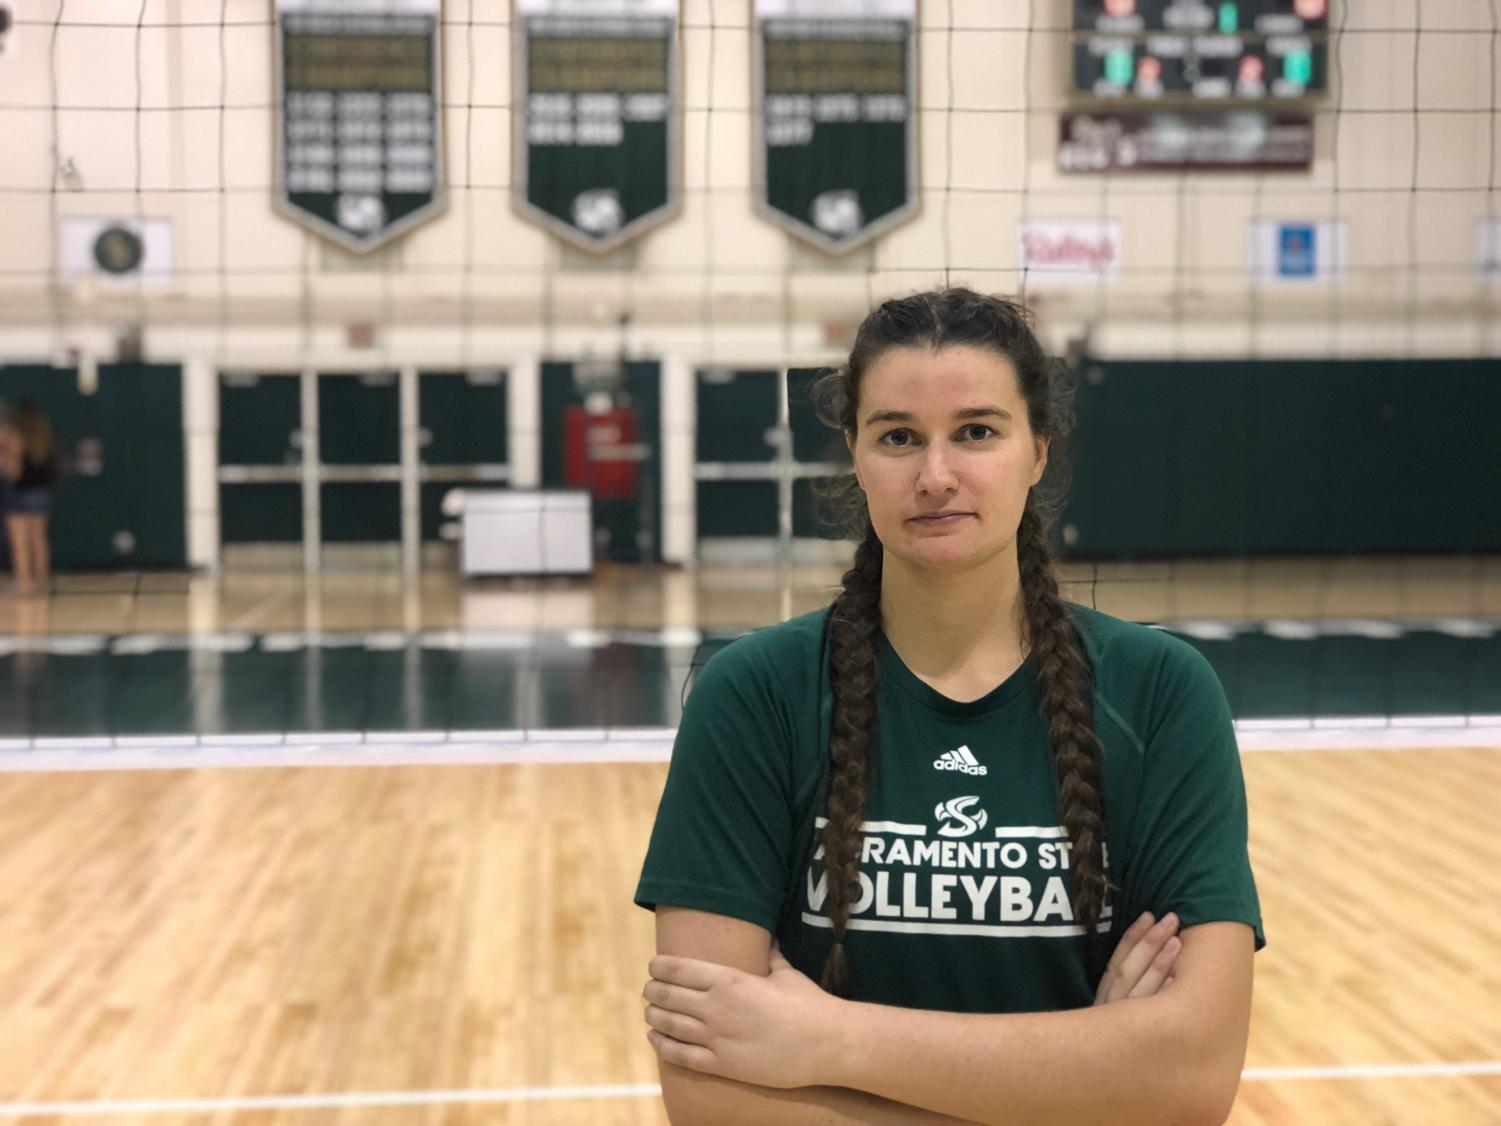 Senior outside hitter Mikaela Nocetti during the Hornet Invitational on Saturday at Colberg Court. Nocetti led the Hornets in kills a season ago as a junior.